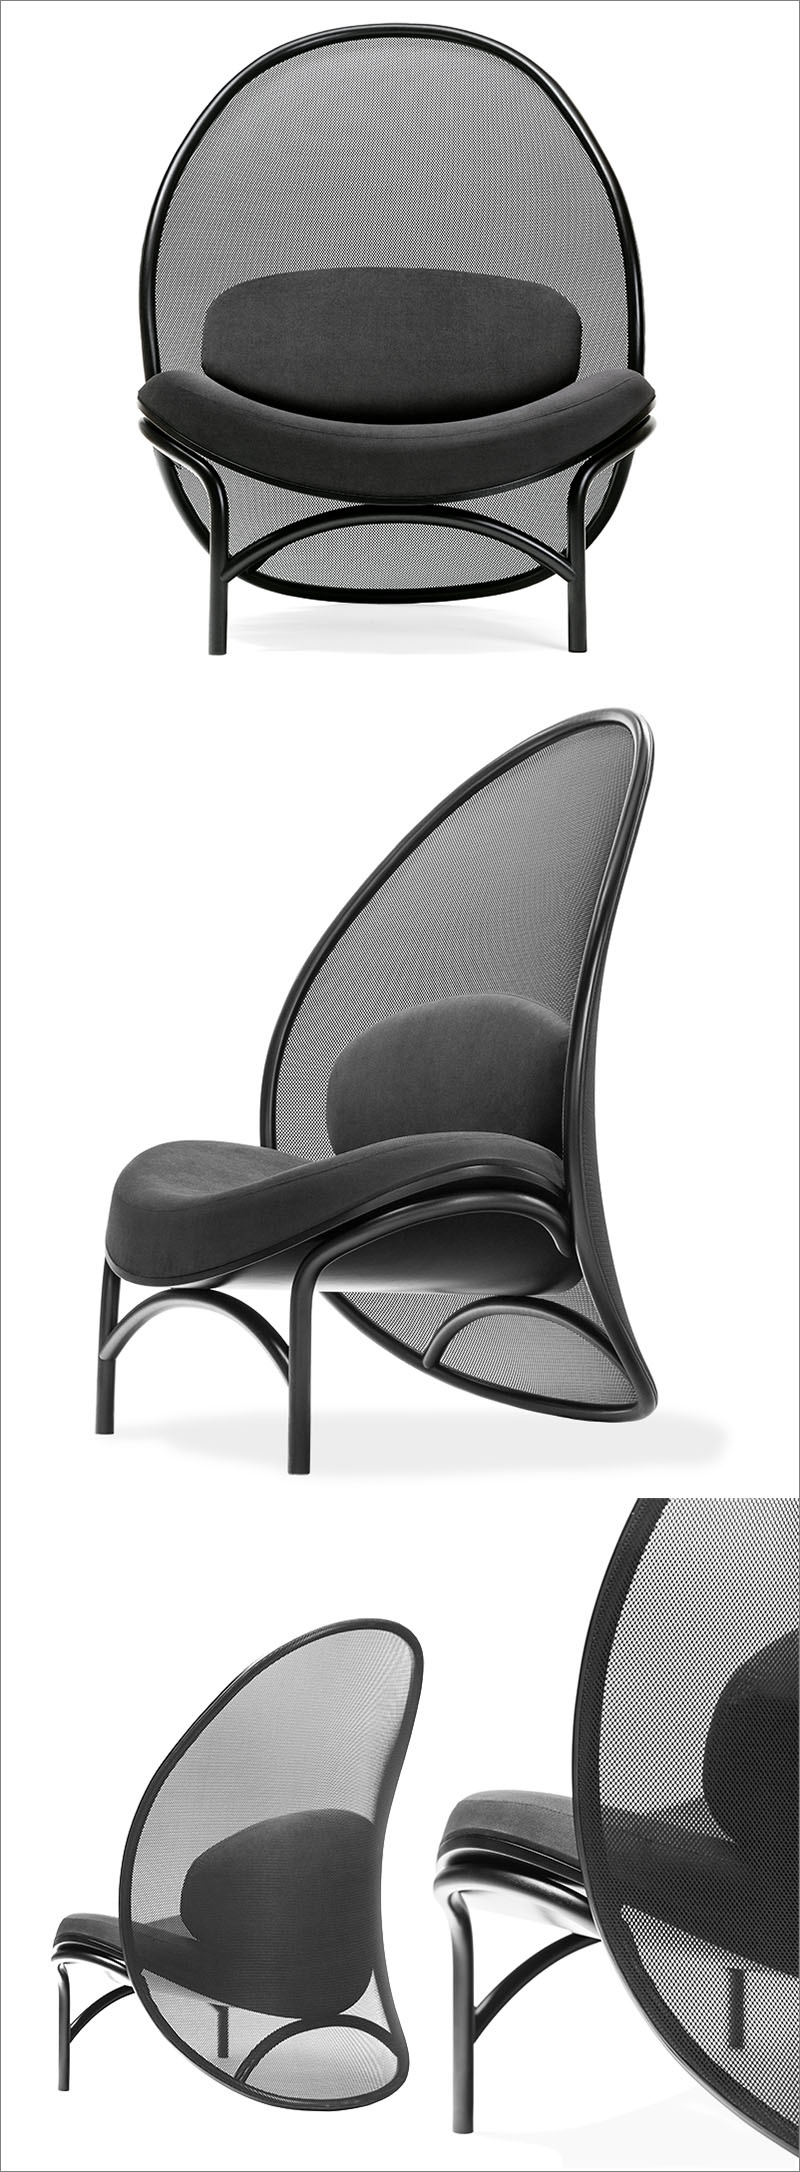 chips-lounge-chair-lucie-koldova-100118-1256-02